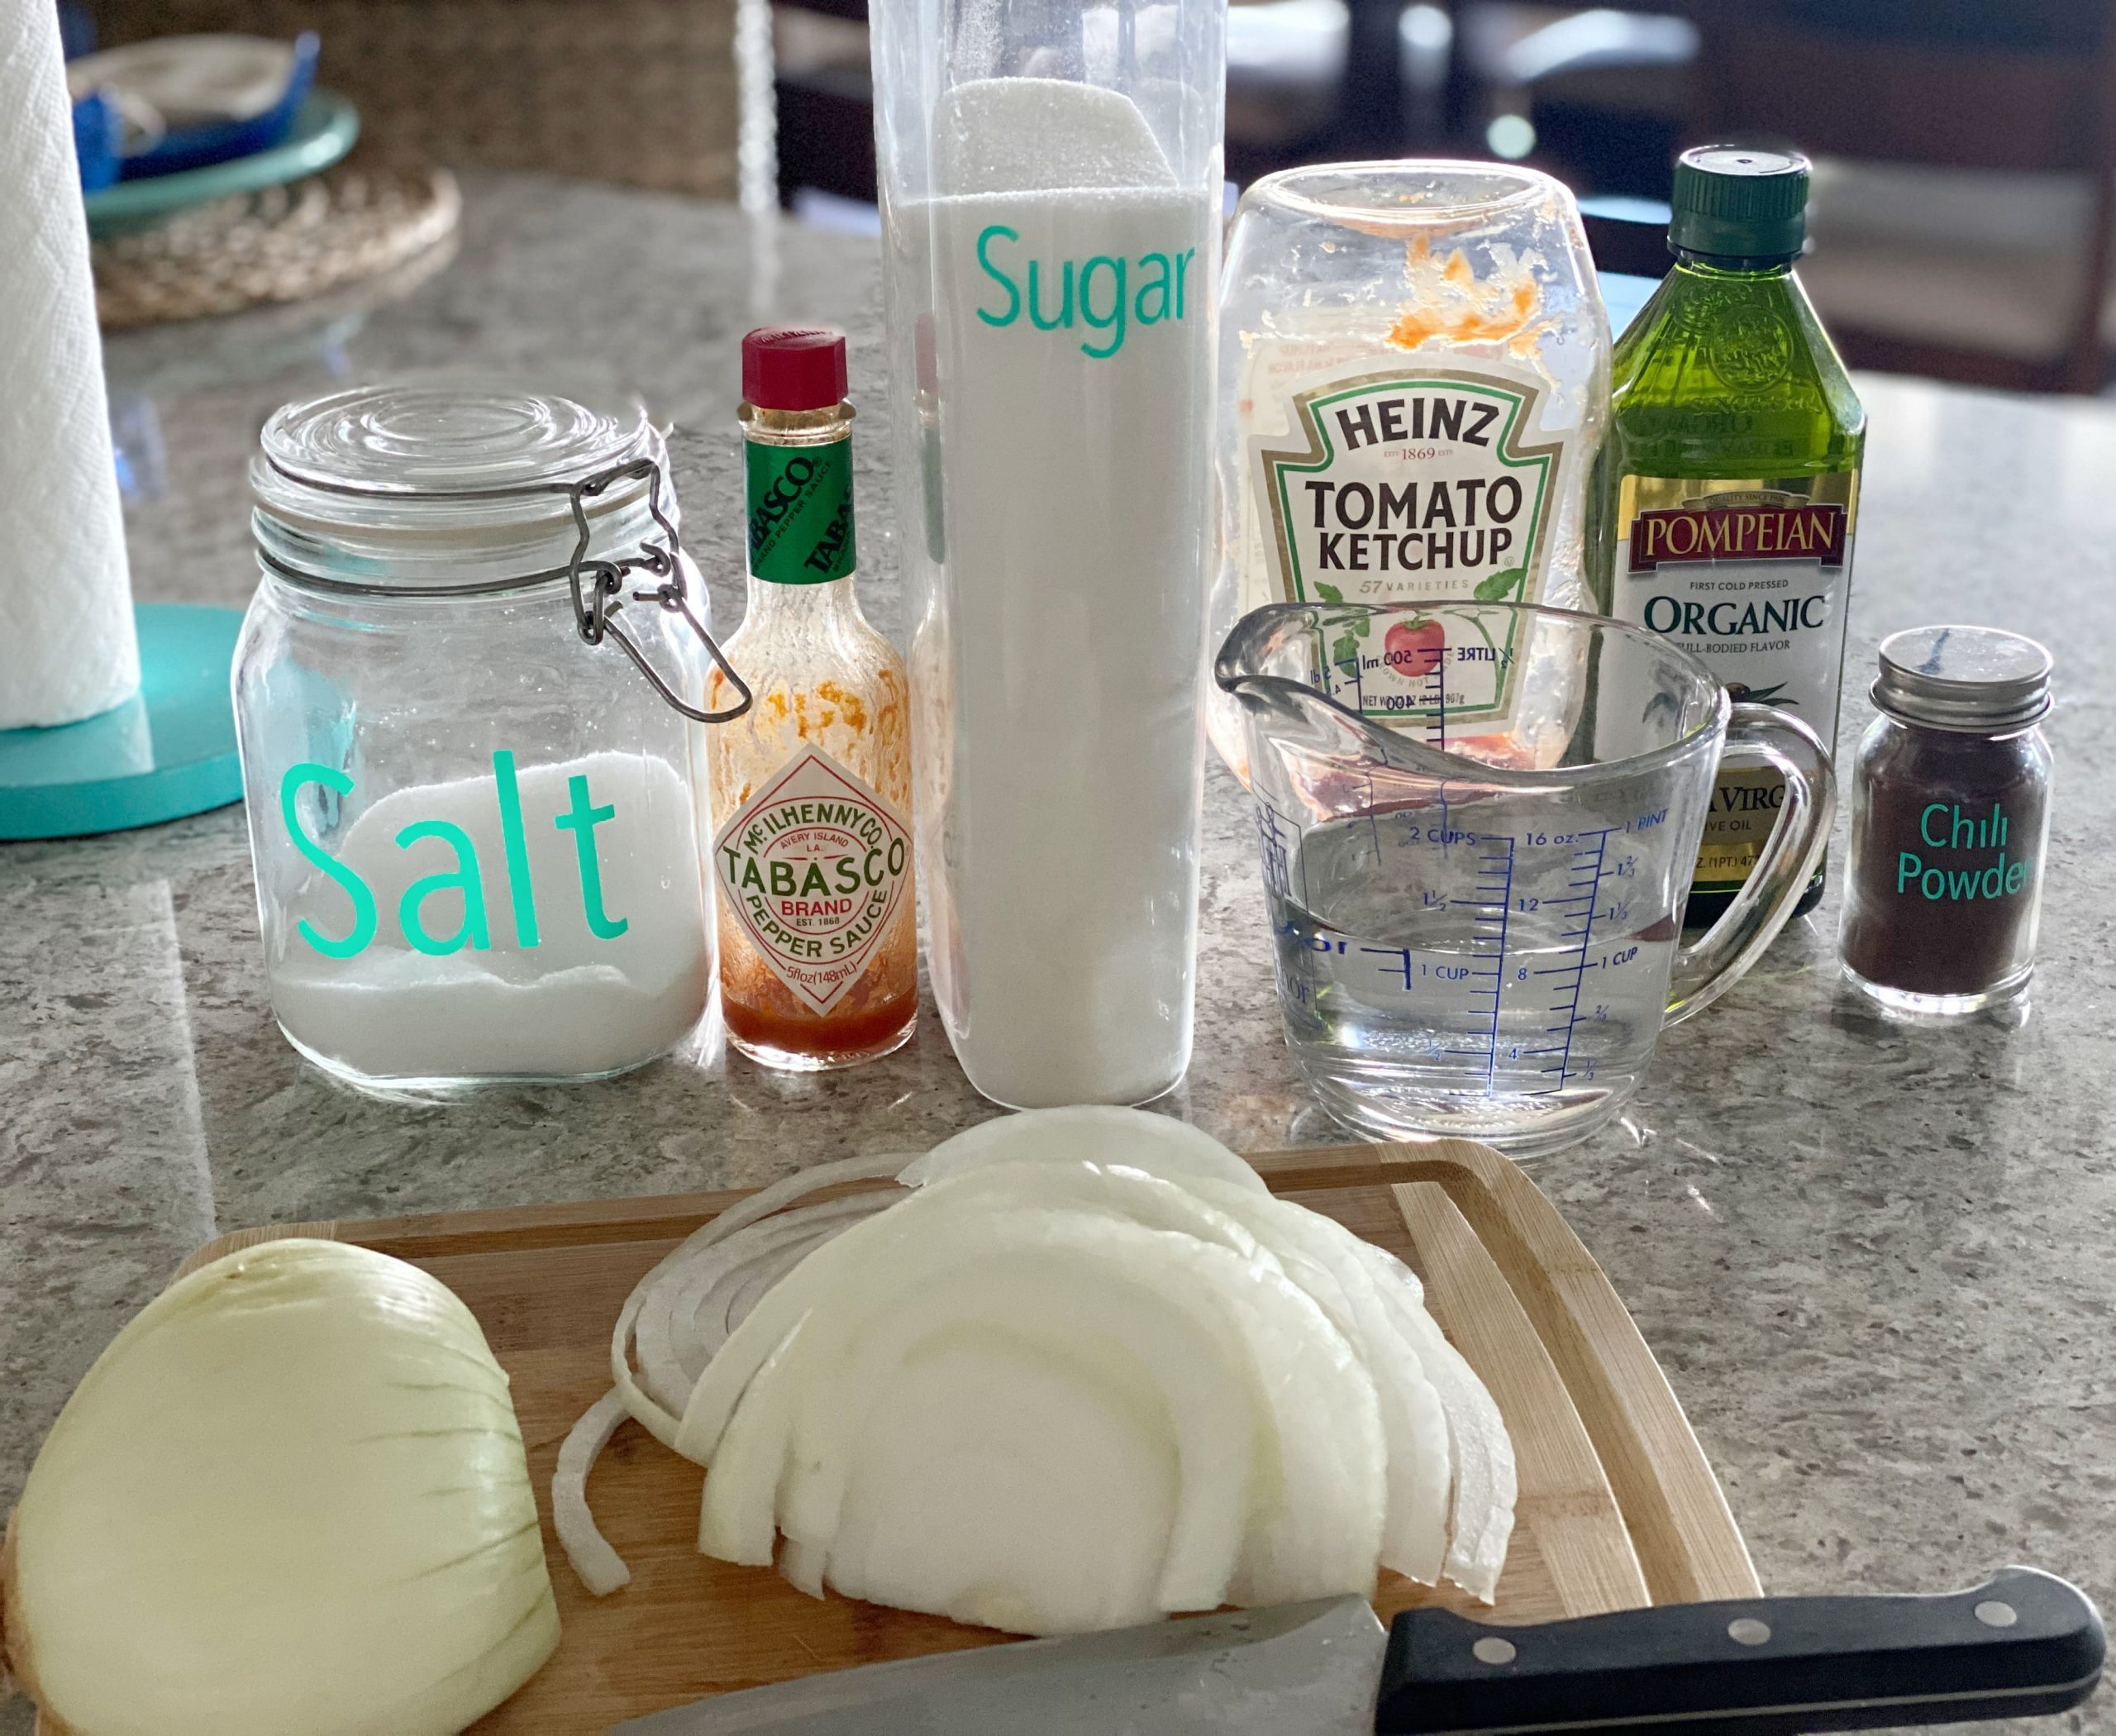 Ingredients for Hot Dog Onion Sauce Recipe